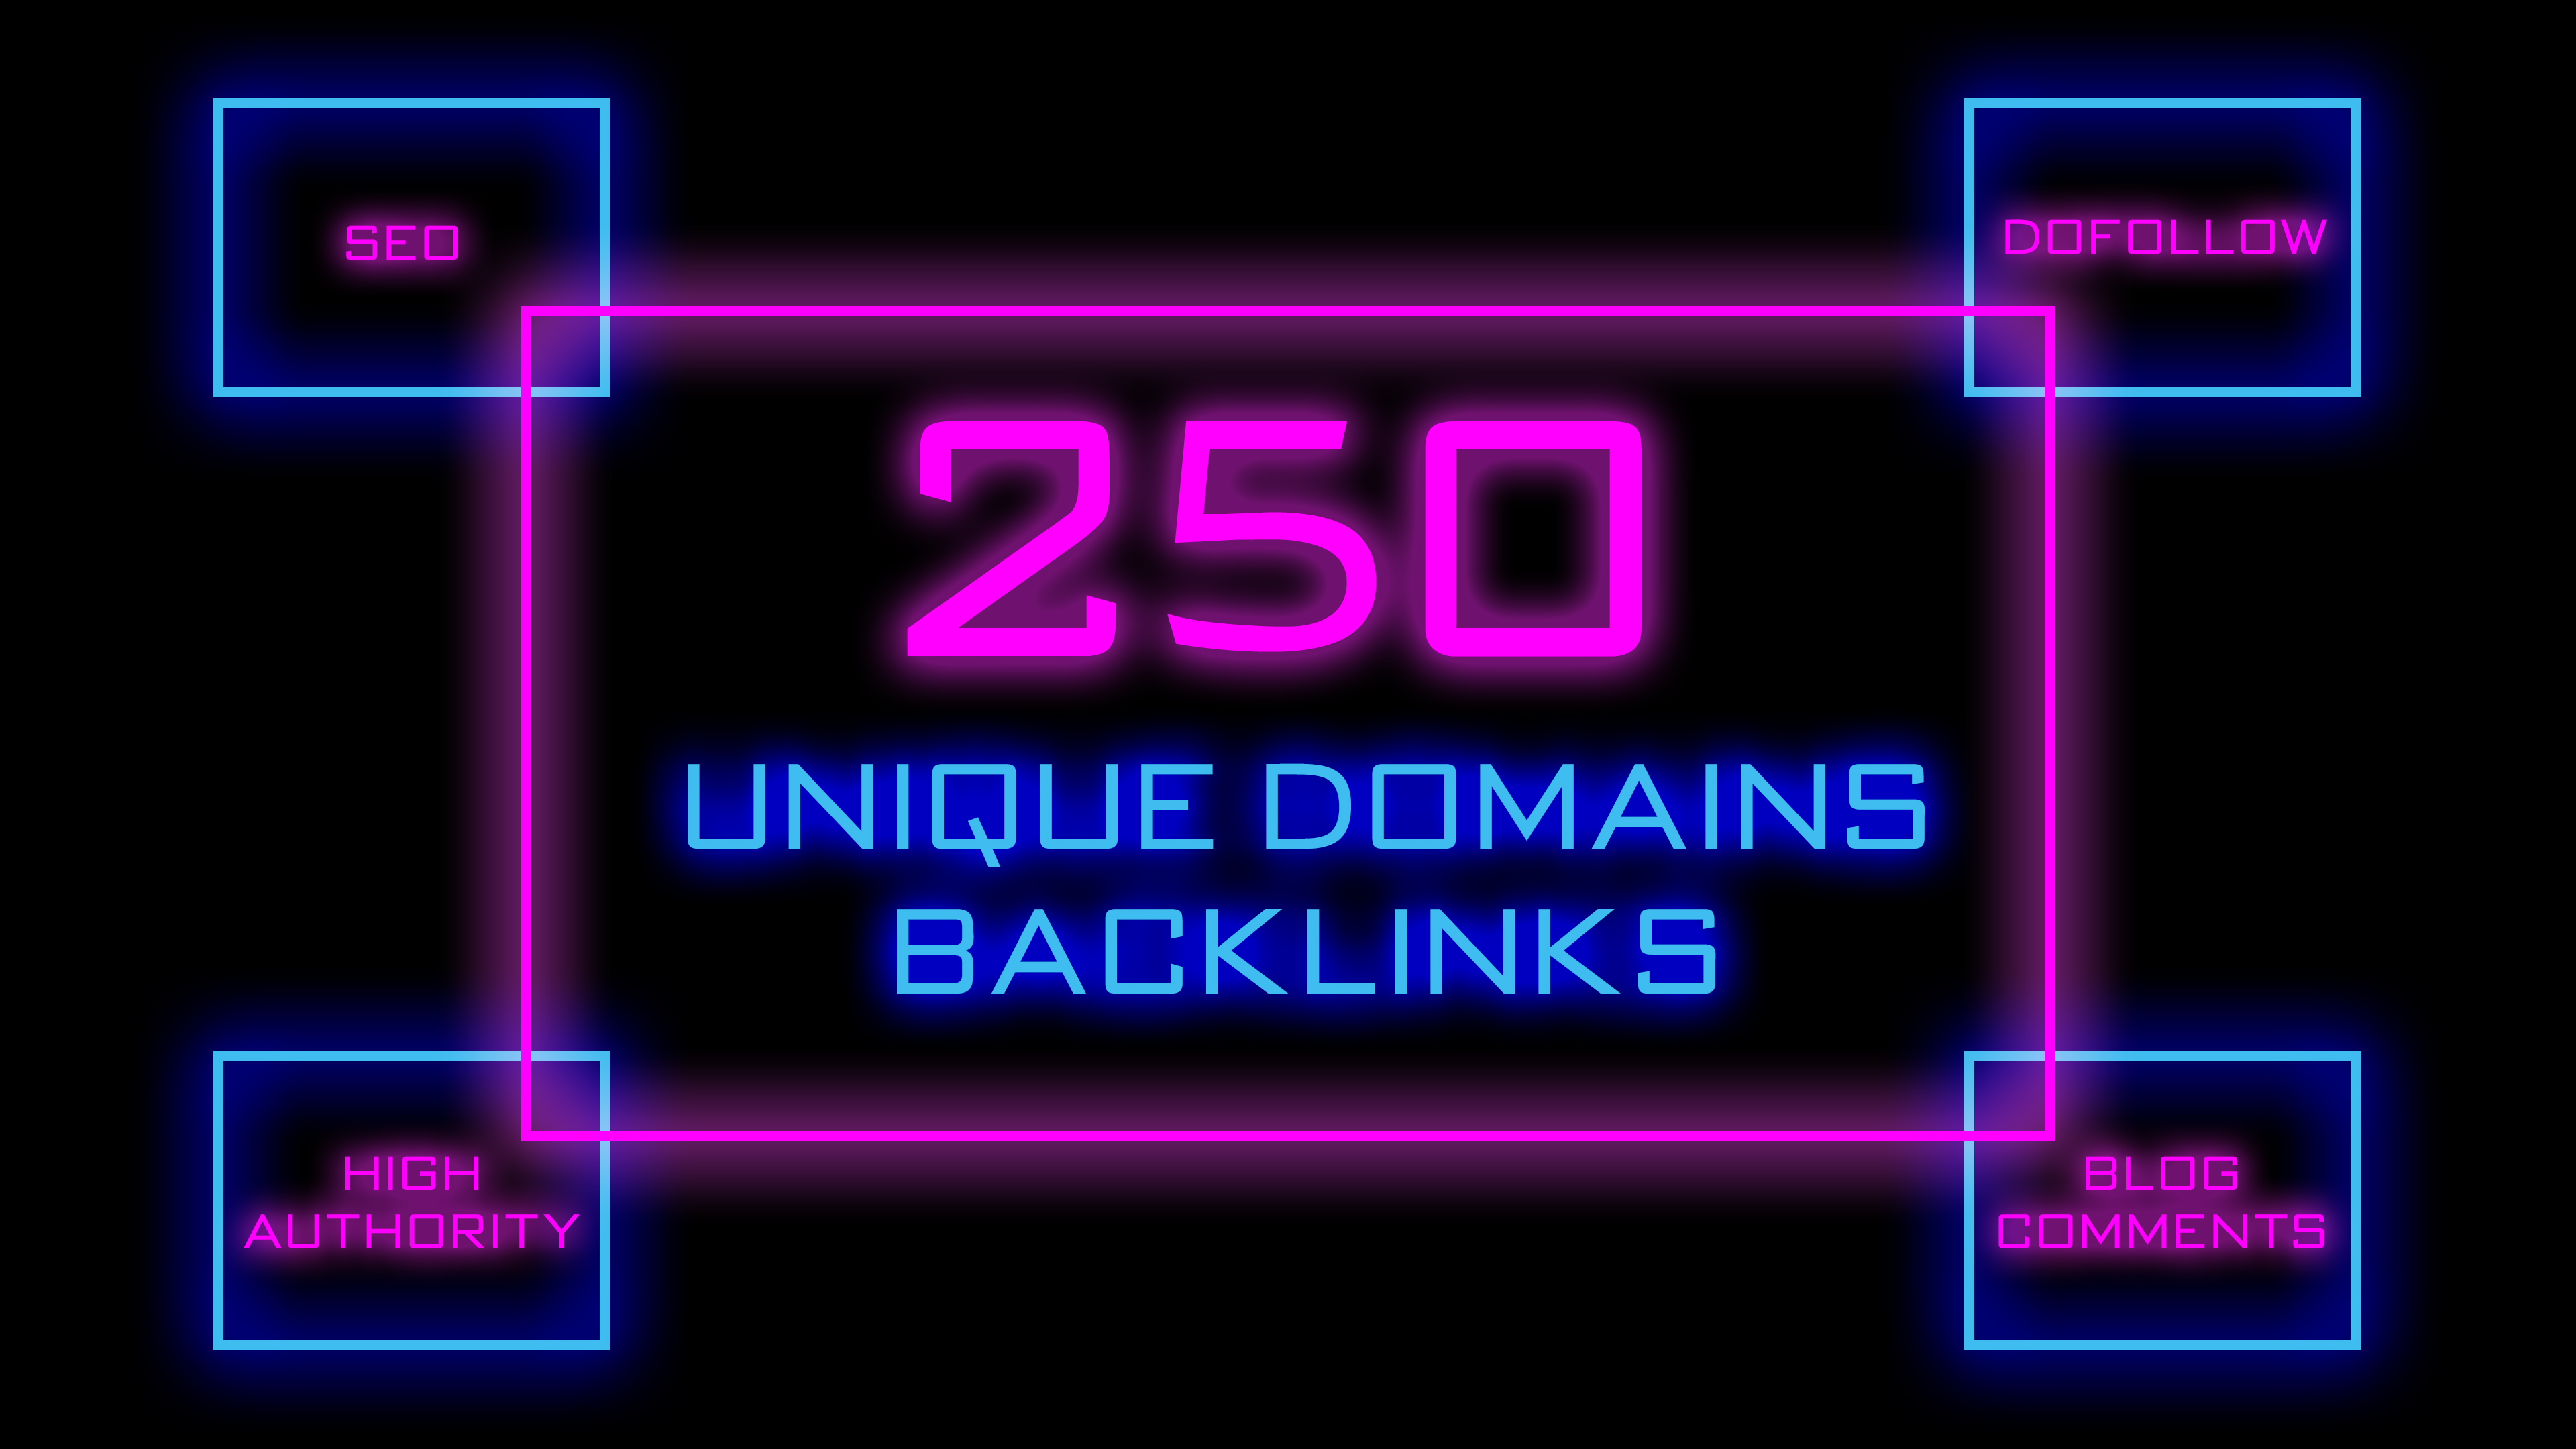 Skyrocket Your Website Rankings With 250 High Authority Unique Domains Backlinks